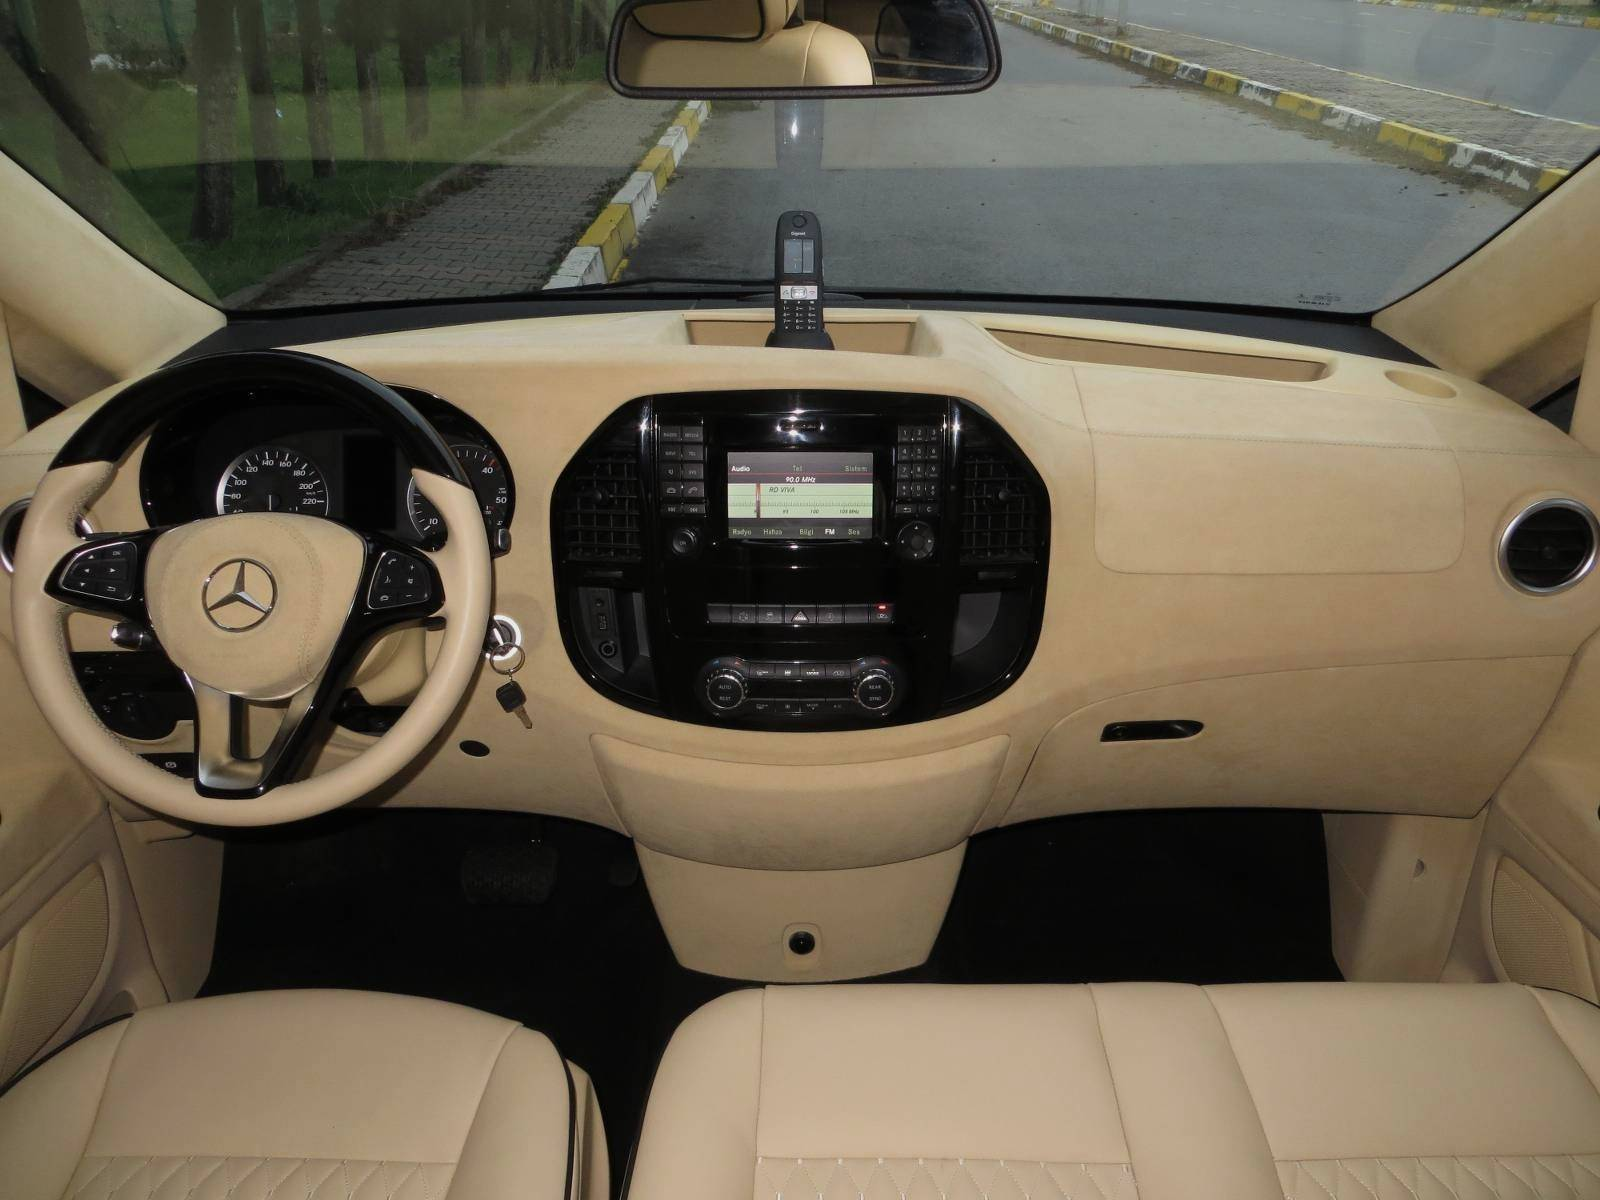 Would You Pay $198,000 for a Mercedes-Benz Van? - autoevolution